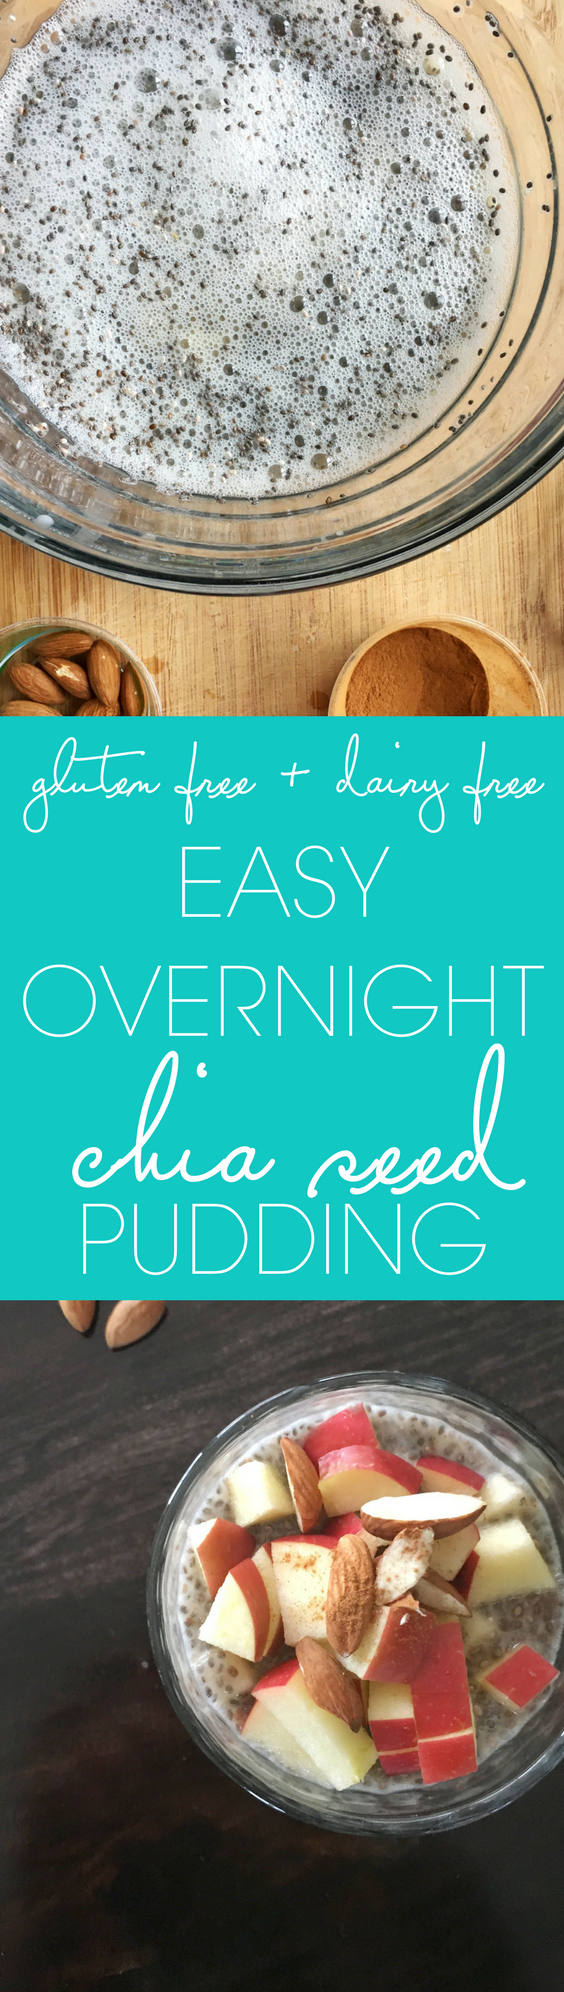 Overnight-Chia-Seed-Pudding-pinterest.png